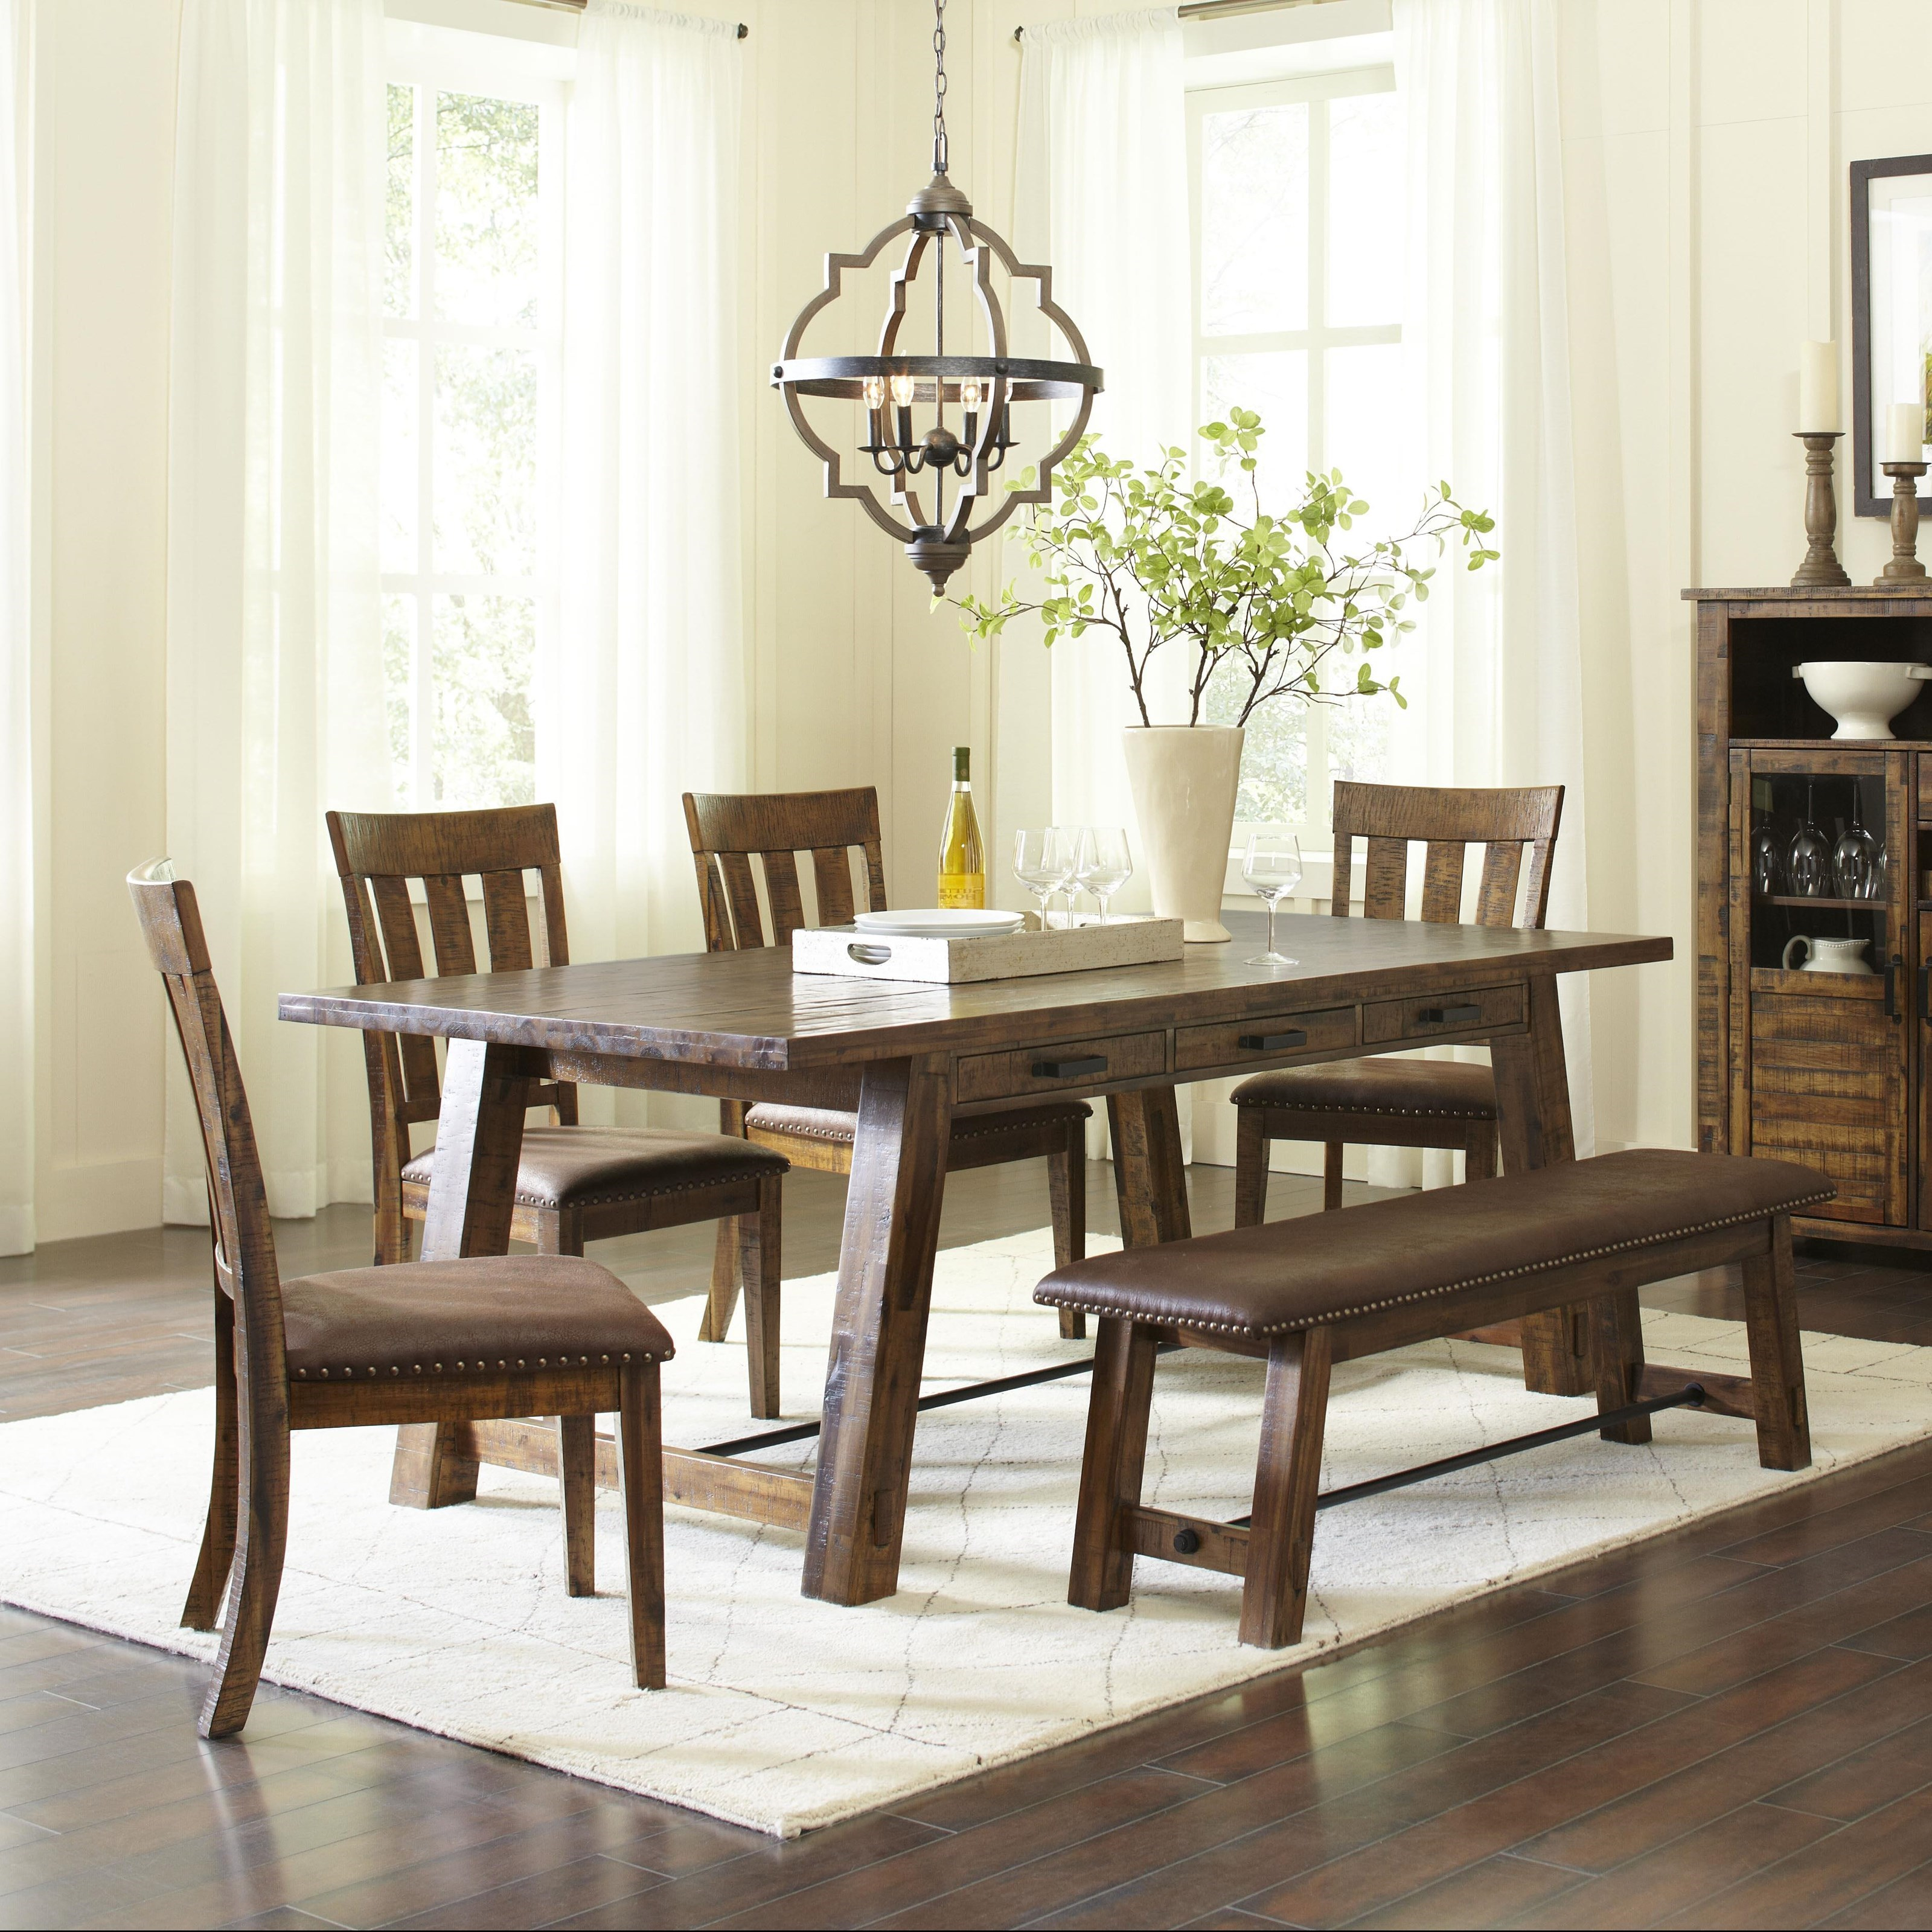 Jofran Cannon Valley Trestle Dining Table and